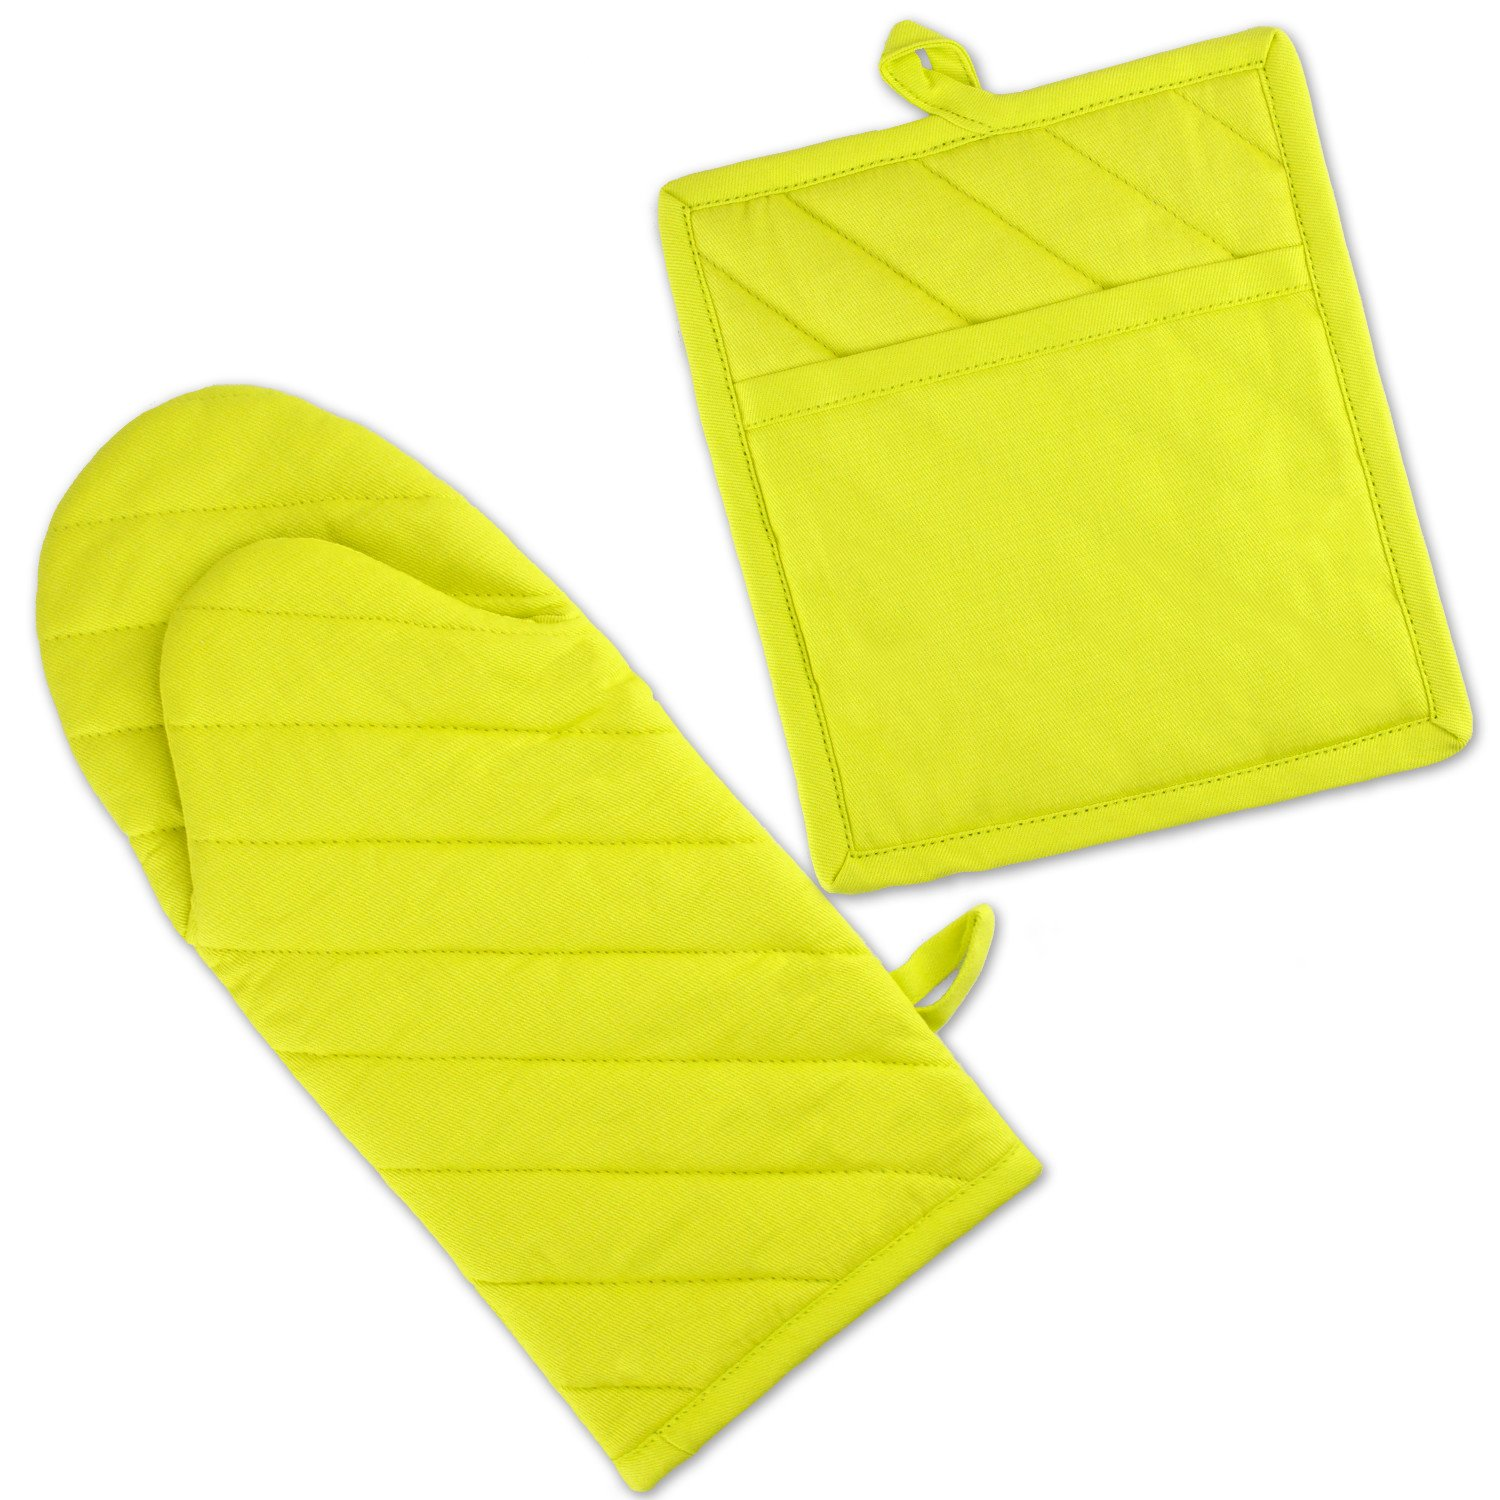 """DII Cotton Neon Oven Mitt 13 x 6"""" and Pot Holder 8 x 9"""" Kitchen Gift Set, Machine Washable and Heat Resistant for Everyday Kitchen Cooking and Baking-Neon Yellow"""